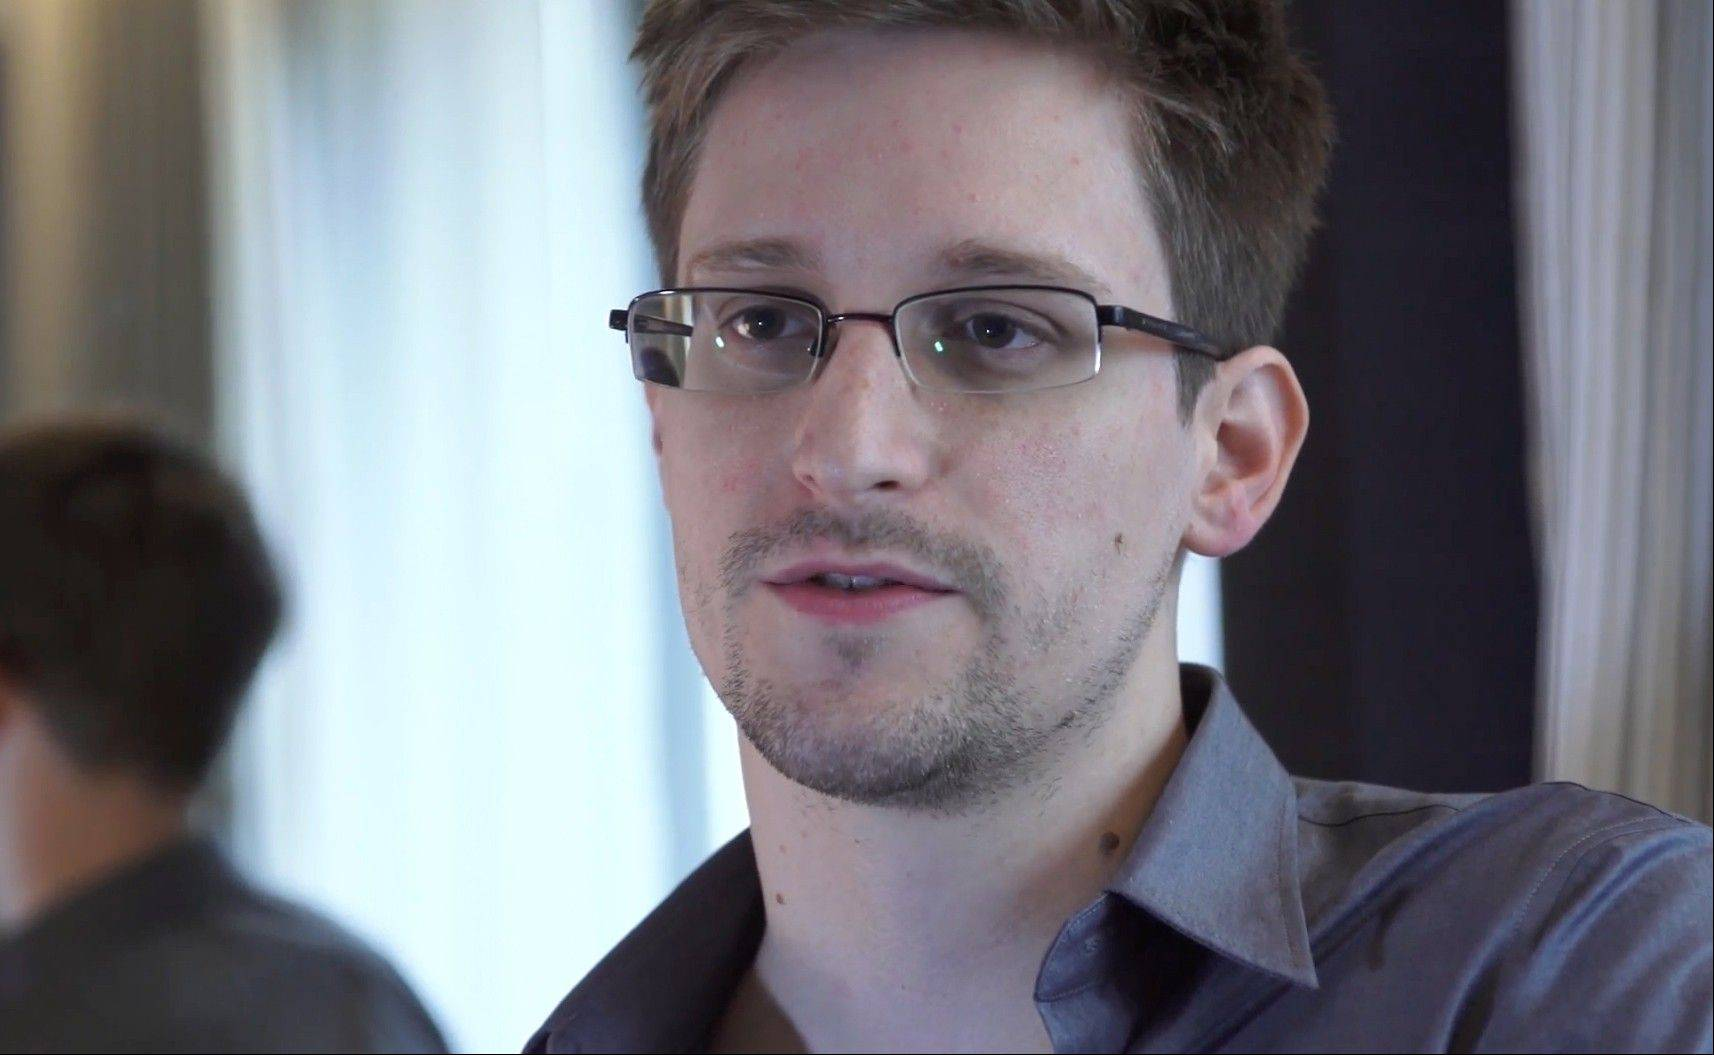 Two Western diplomats say U.S. officials have briefed them on documents obtained by former National Security Agency contractor Edward Snowden that might expose the intelligence operations of their respective countries.